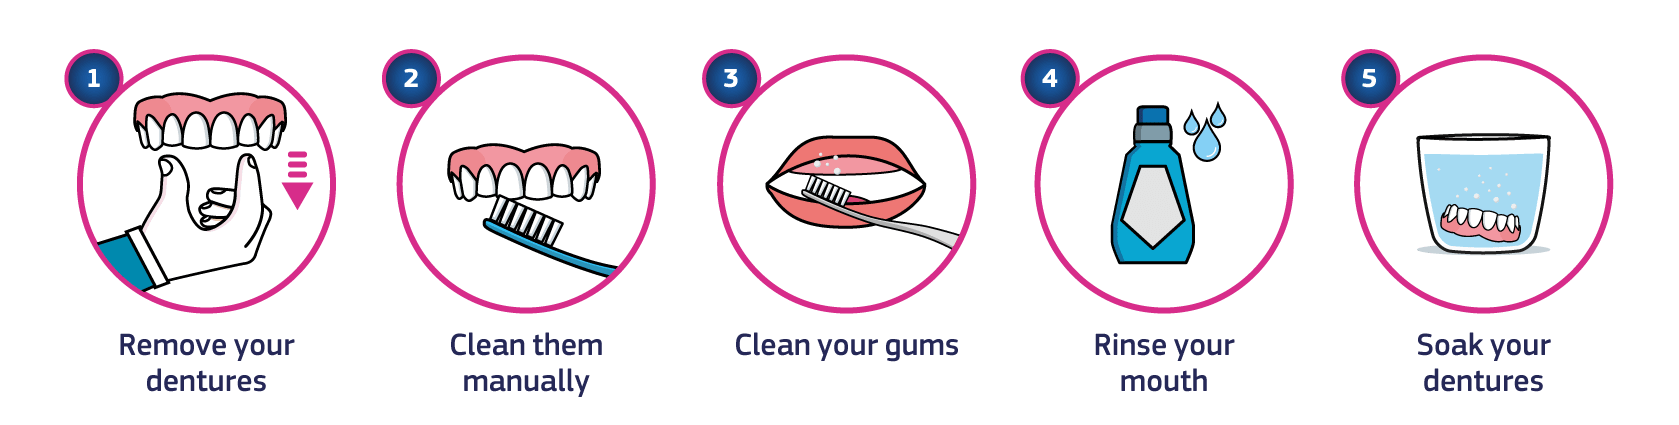 An infographic showing the step-by-step procedure on how to remove dentures: Step 1. Remove your dentures. Step 2. Clean them manually. Step 3. Clean your gums. Step 4. Rinse your mouth. Step 5. Soak your dentures.